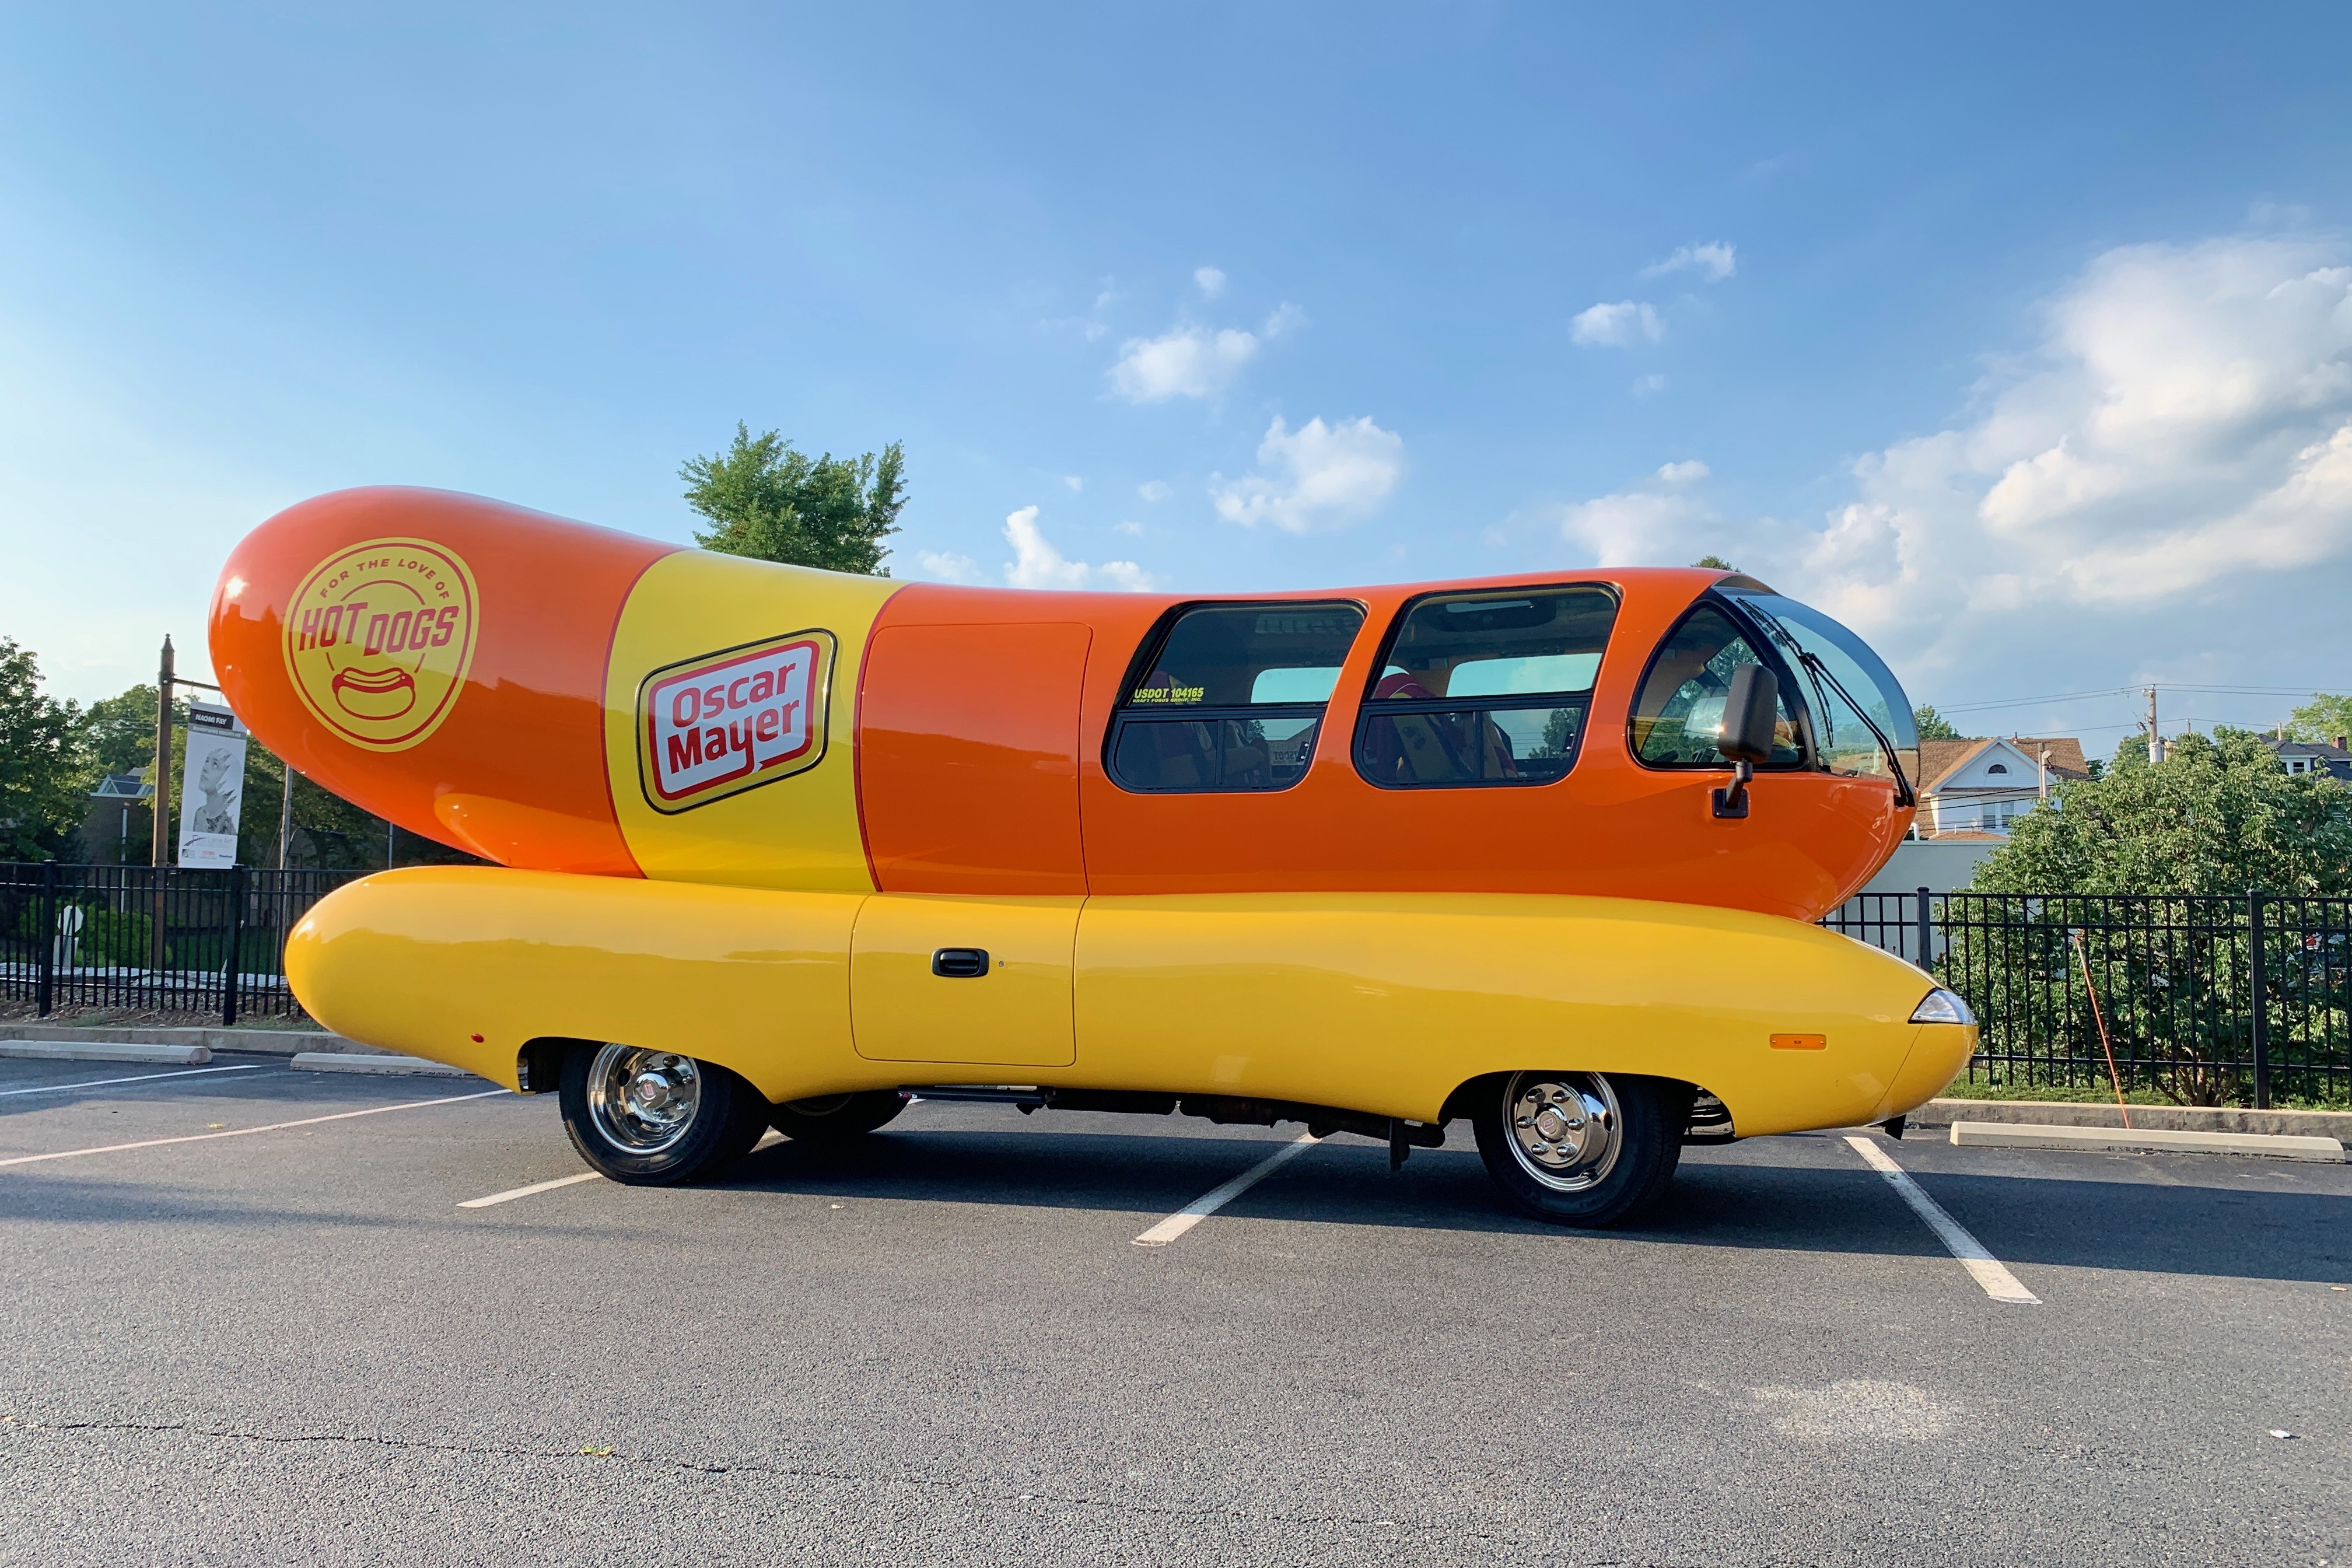 Andi and Kenny  - The Oscar Mayer Wienermobile is Coming to Berks Count